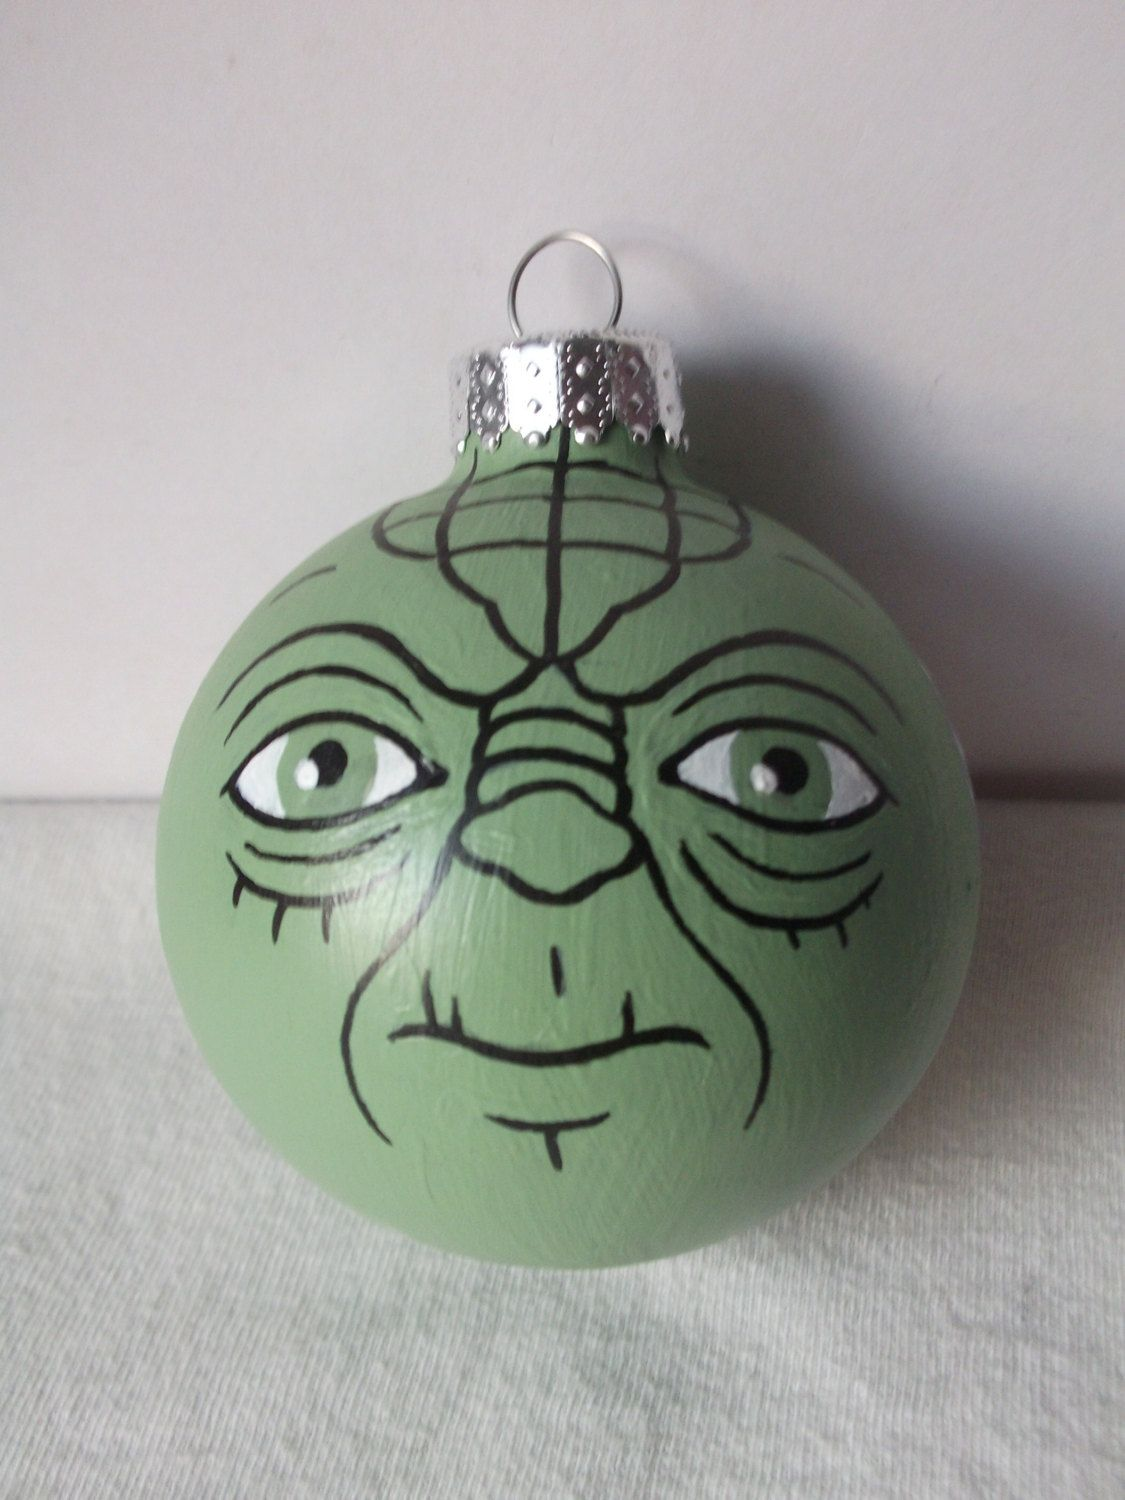 yoda star wars painted holiday ornament christmas pinterest war paint ornament and holidays. Black Bedroom Furniture Sets. Home Design Ideas